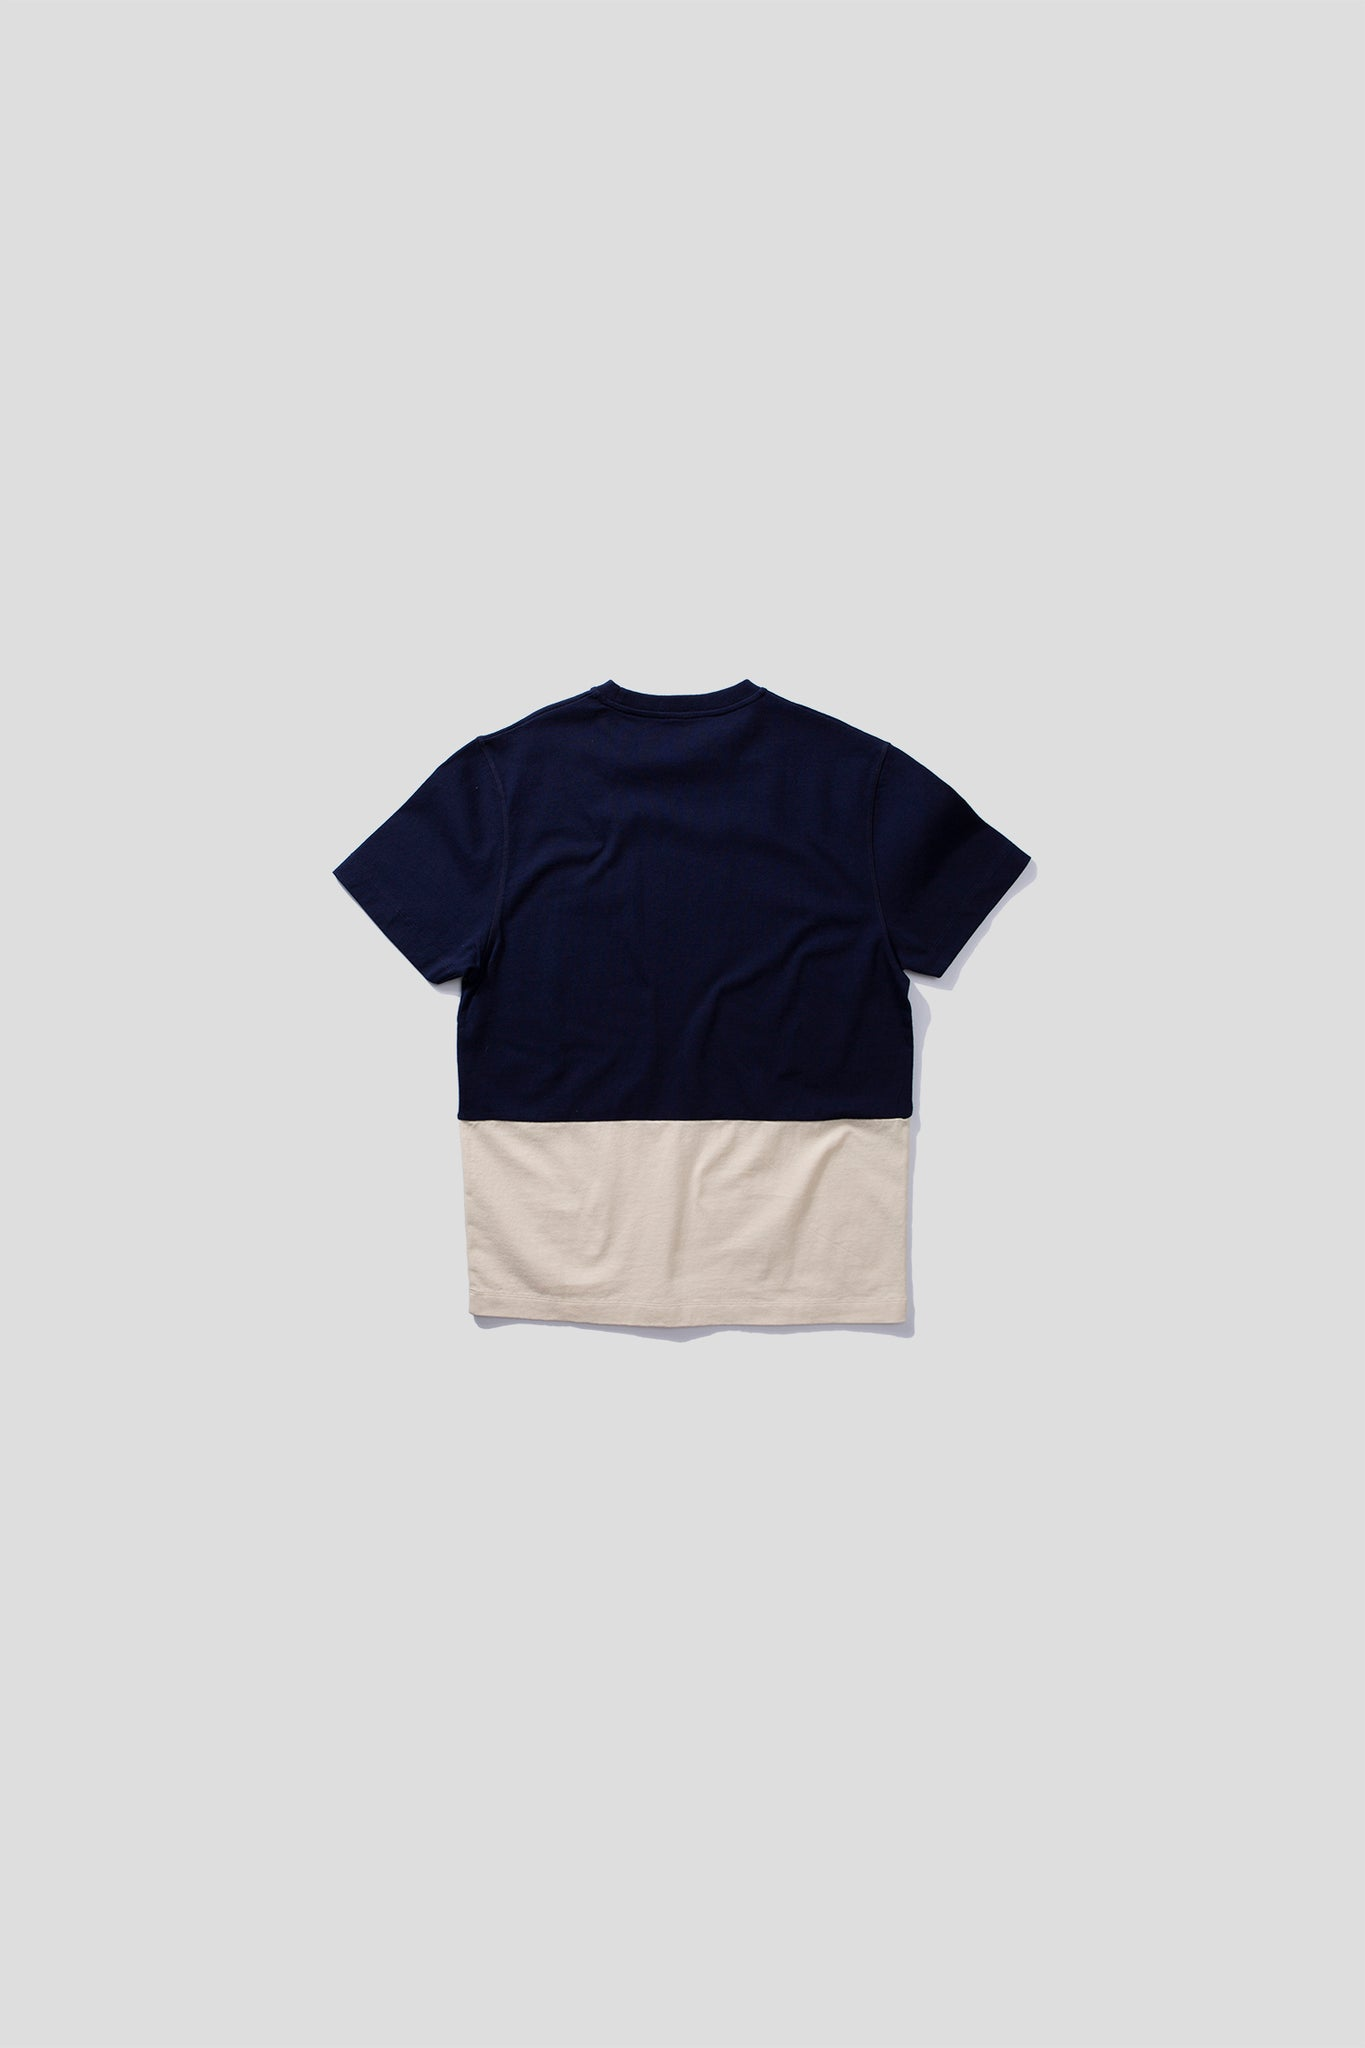 COLOUR BLOCK NAVY